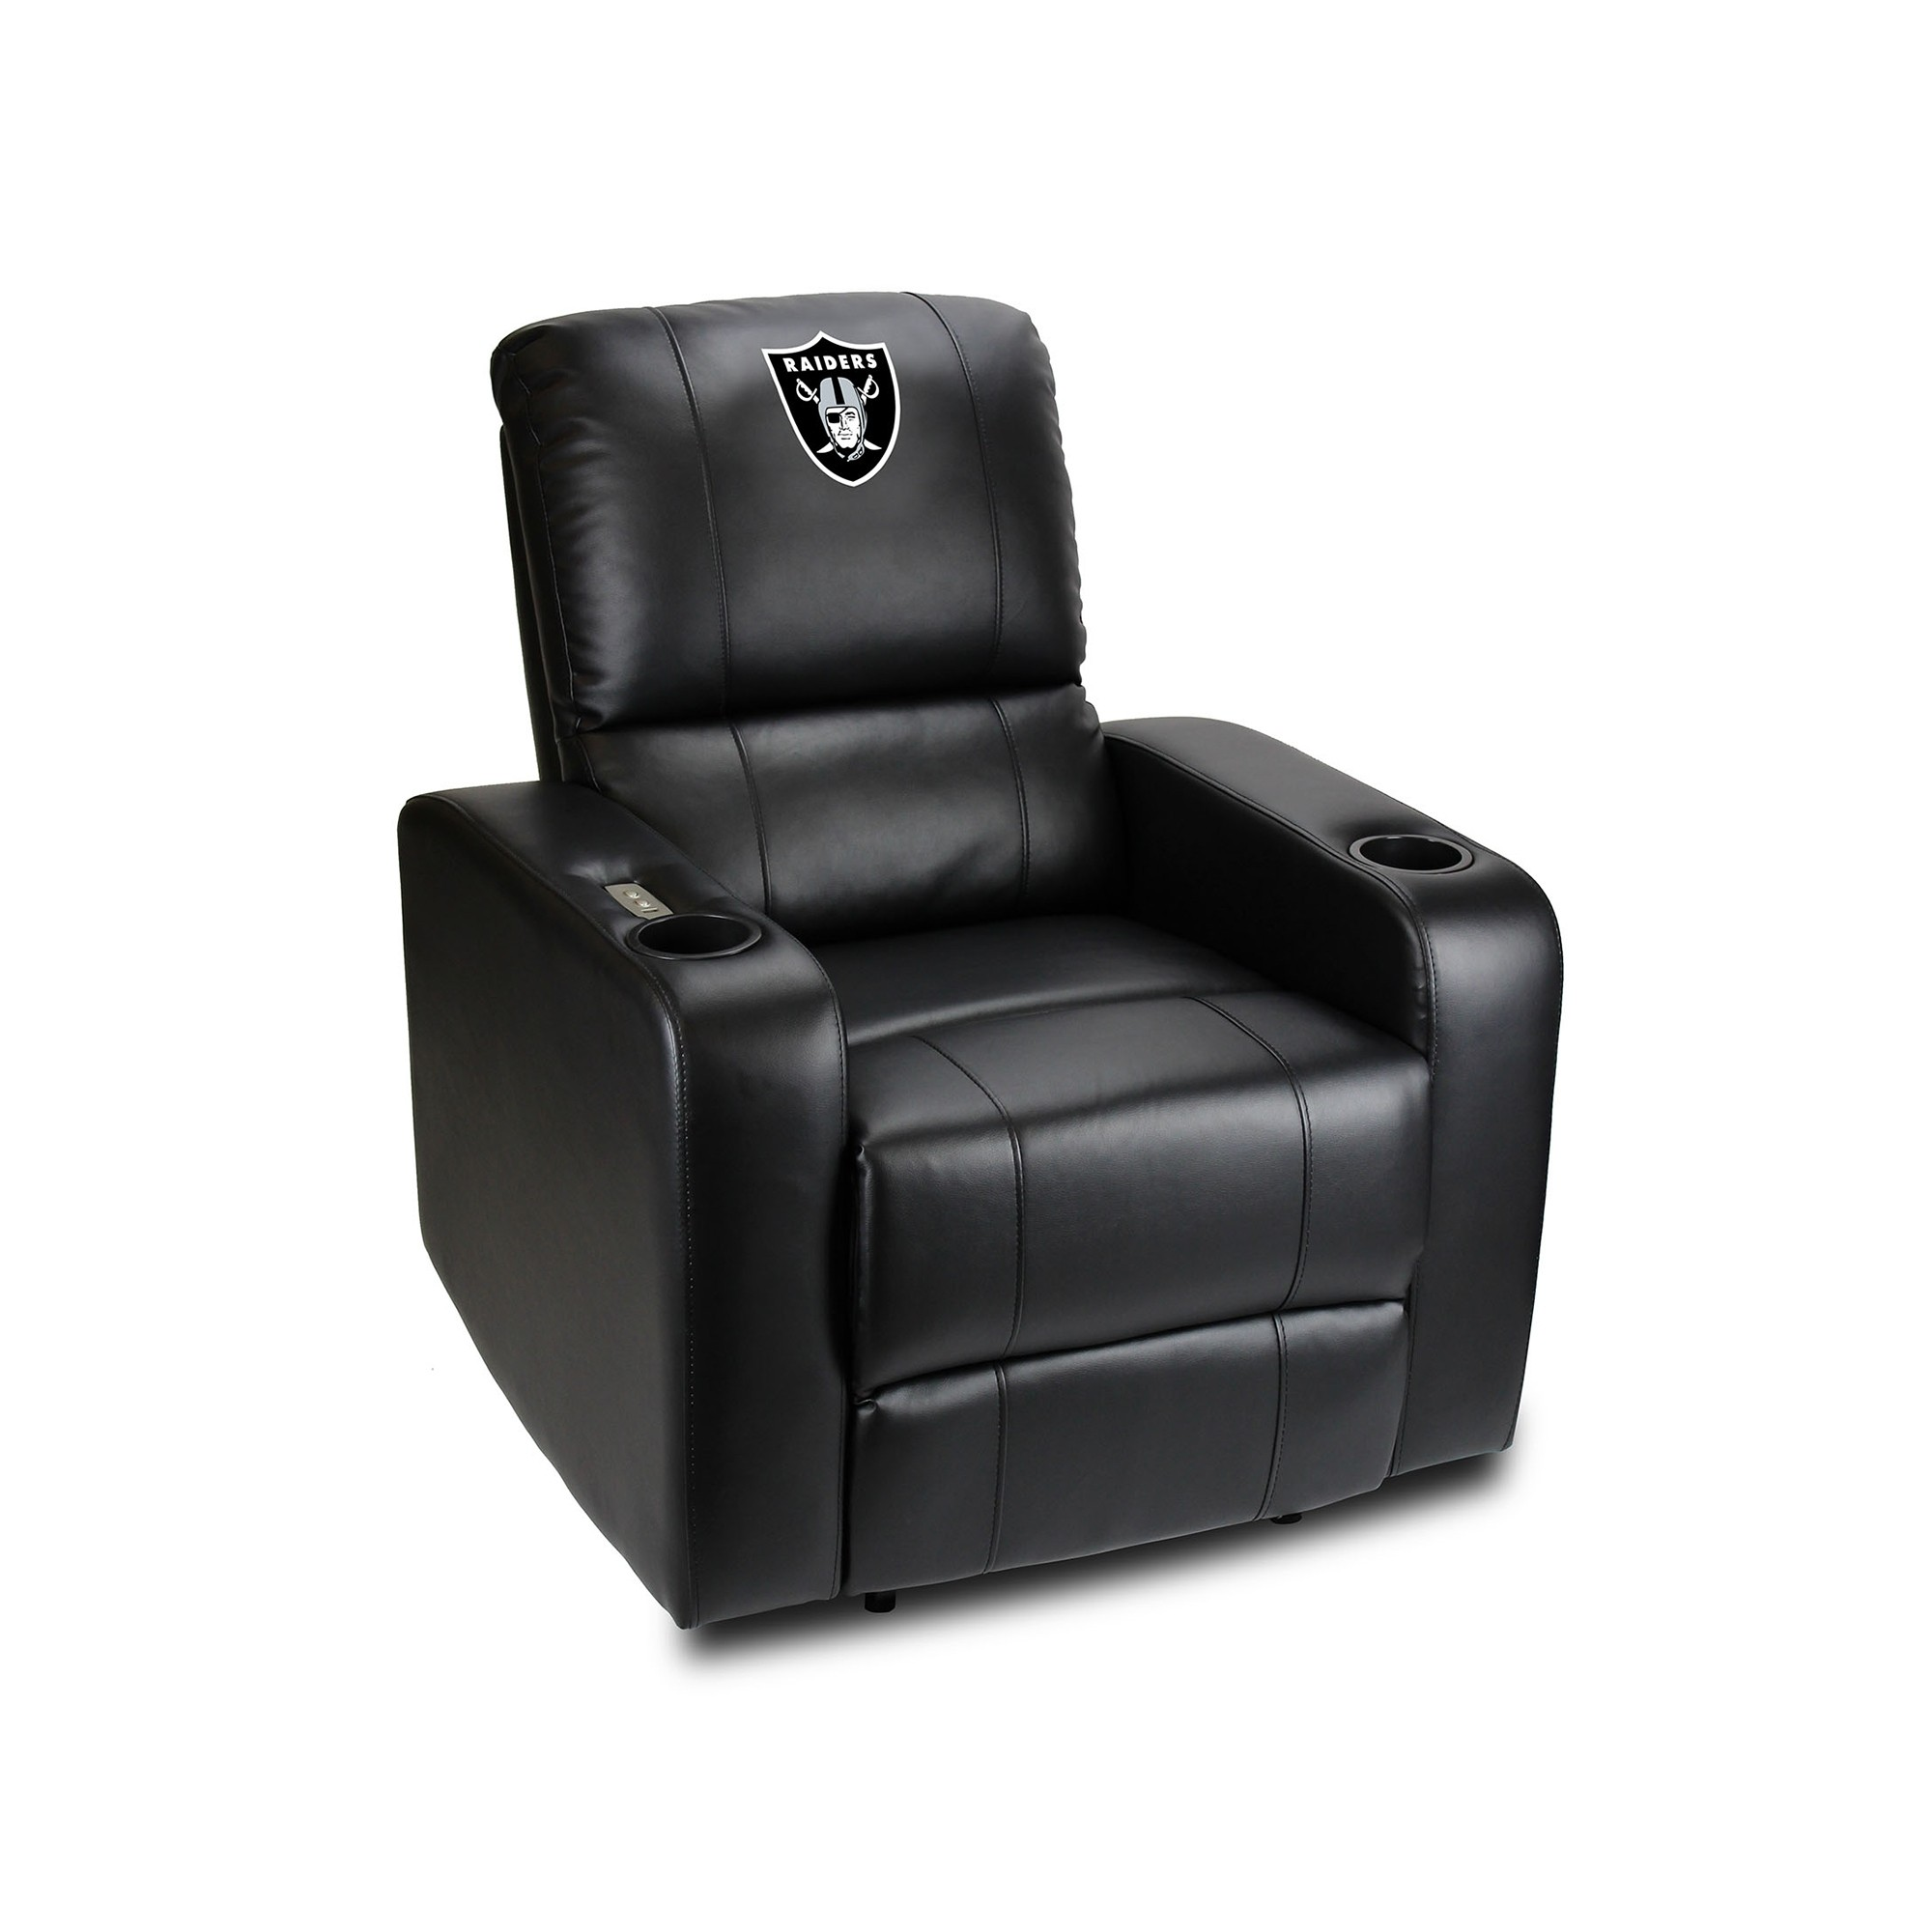 Oakland Raiders Power Theater Recliner With Usb Port - 117-1010 - Nfl Football Oakland Raiders Powerdecals 117-1010